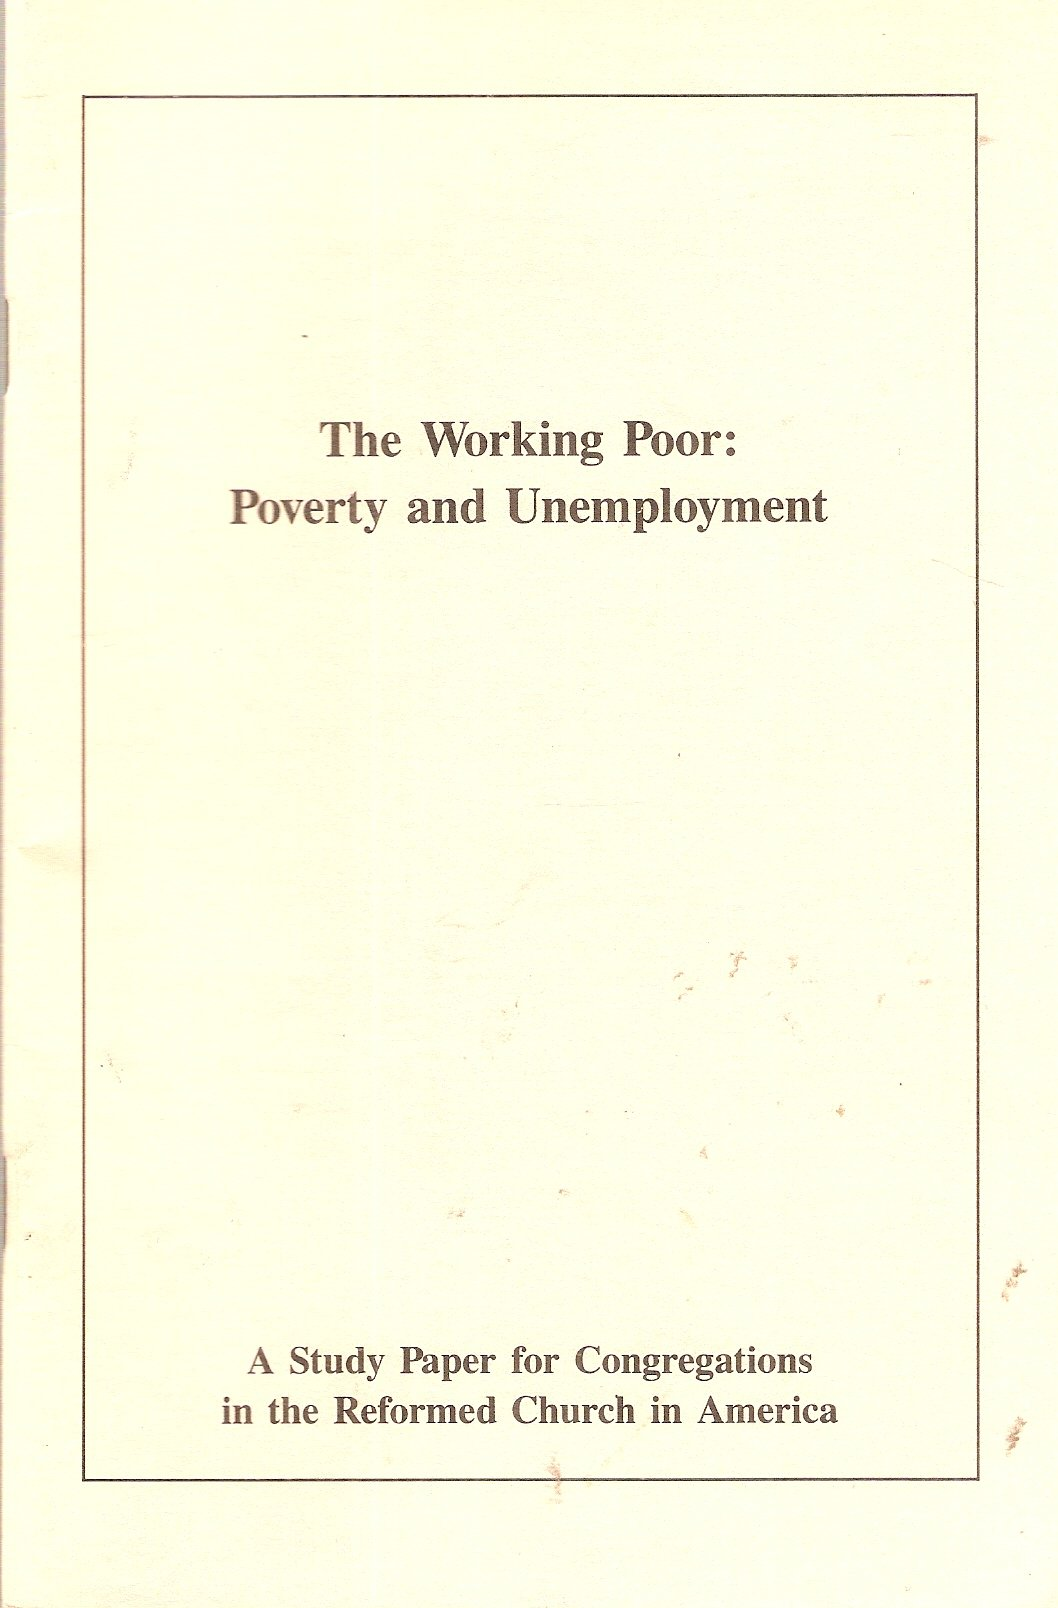 The Working Poor: Poverty and Unemployment